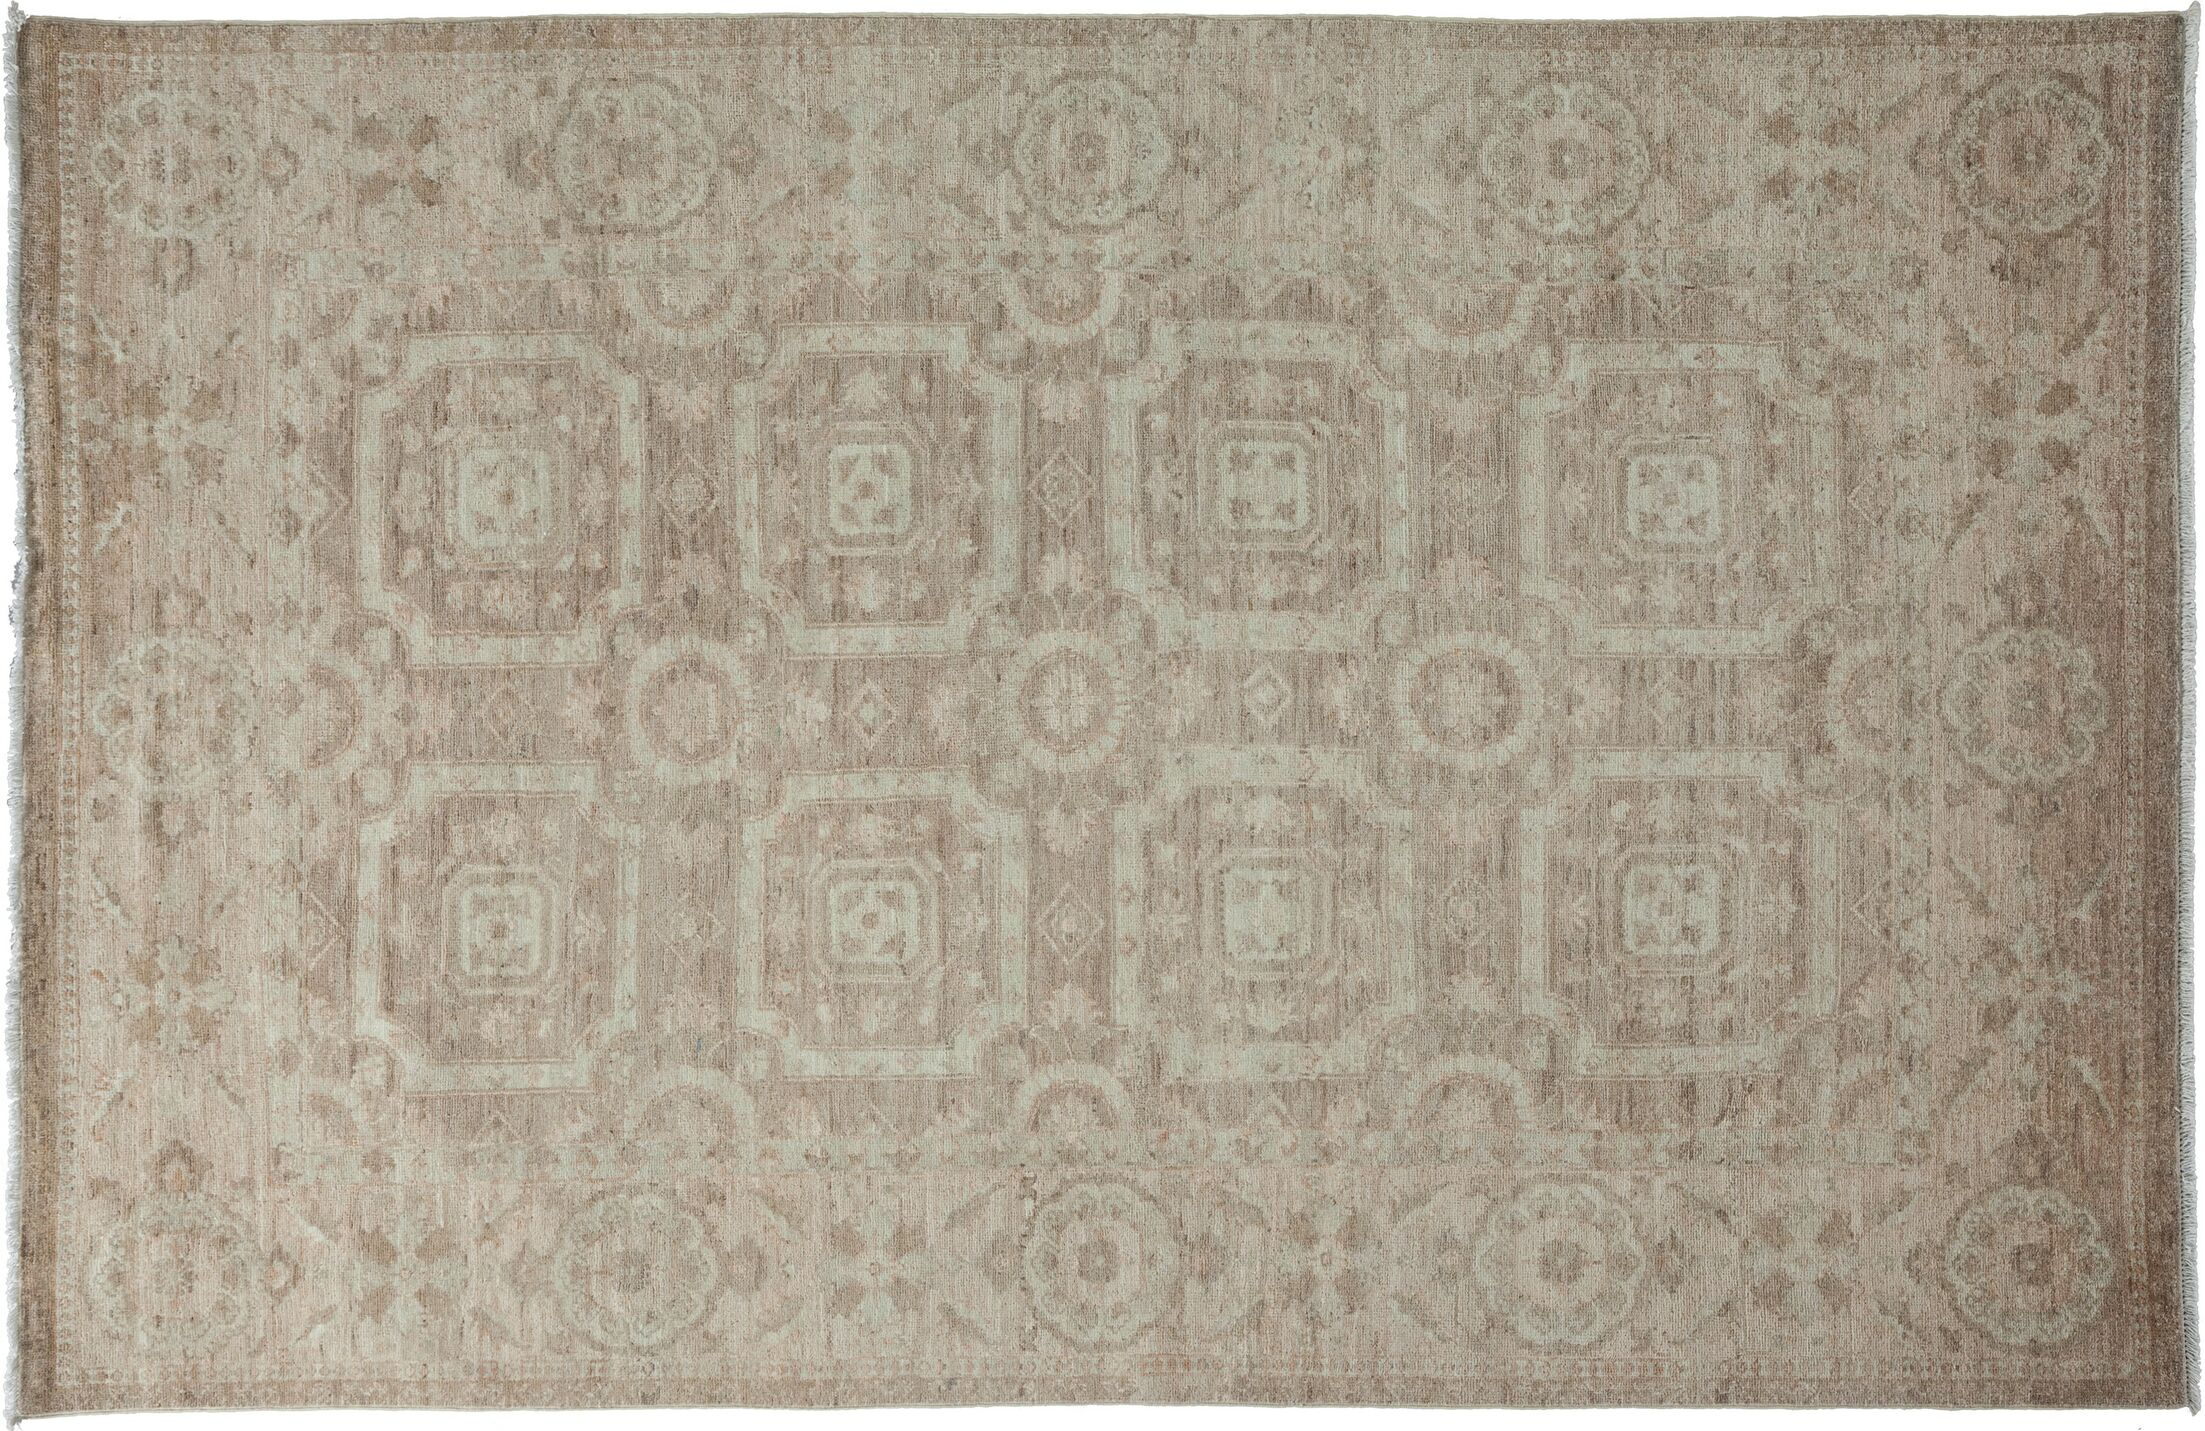 One-of-a-Kind Oushak Hand-Knotted Gray Area Rug